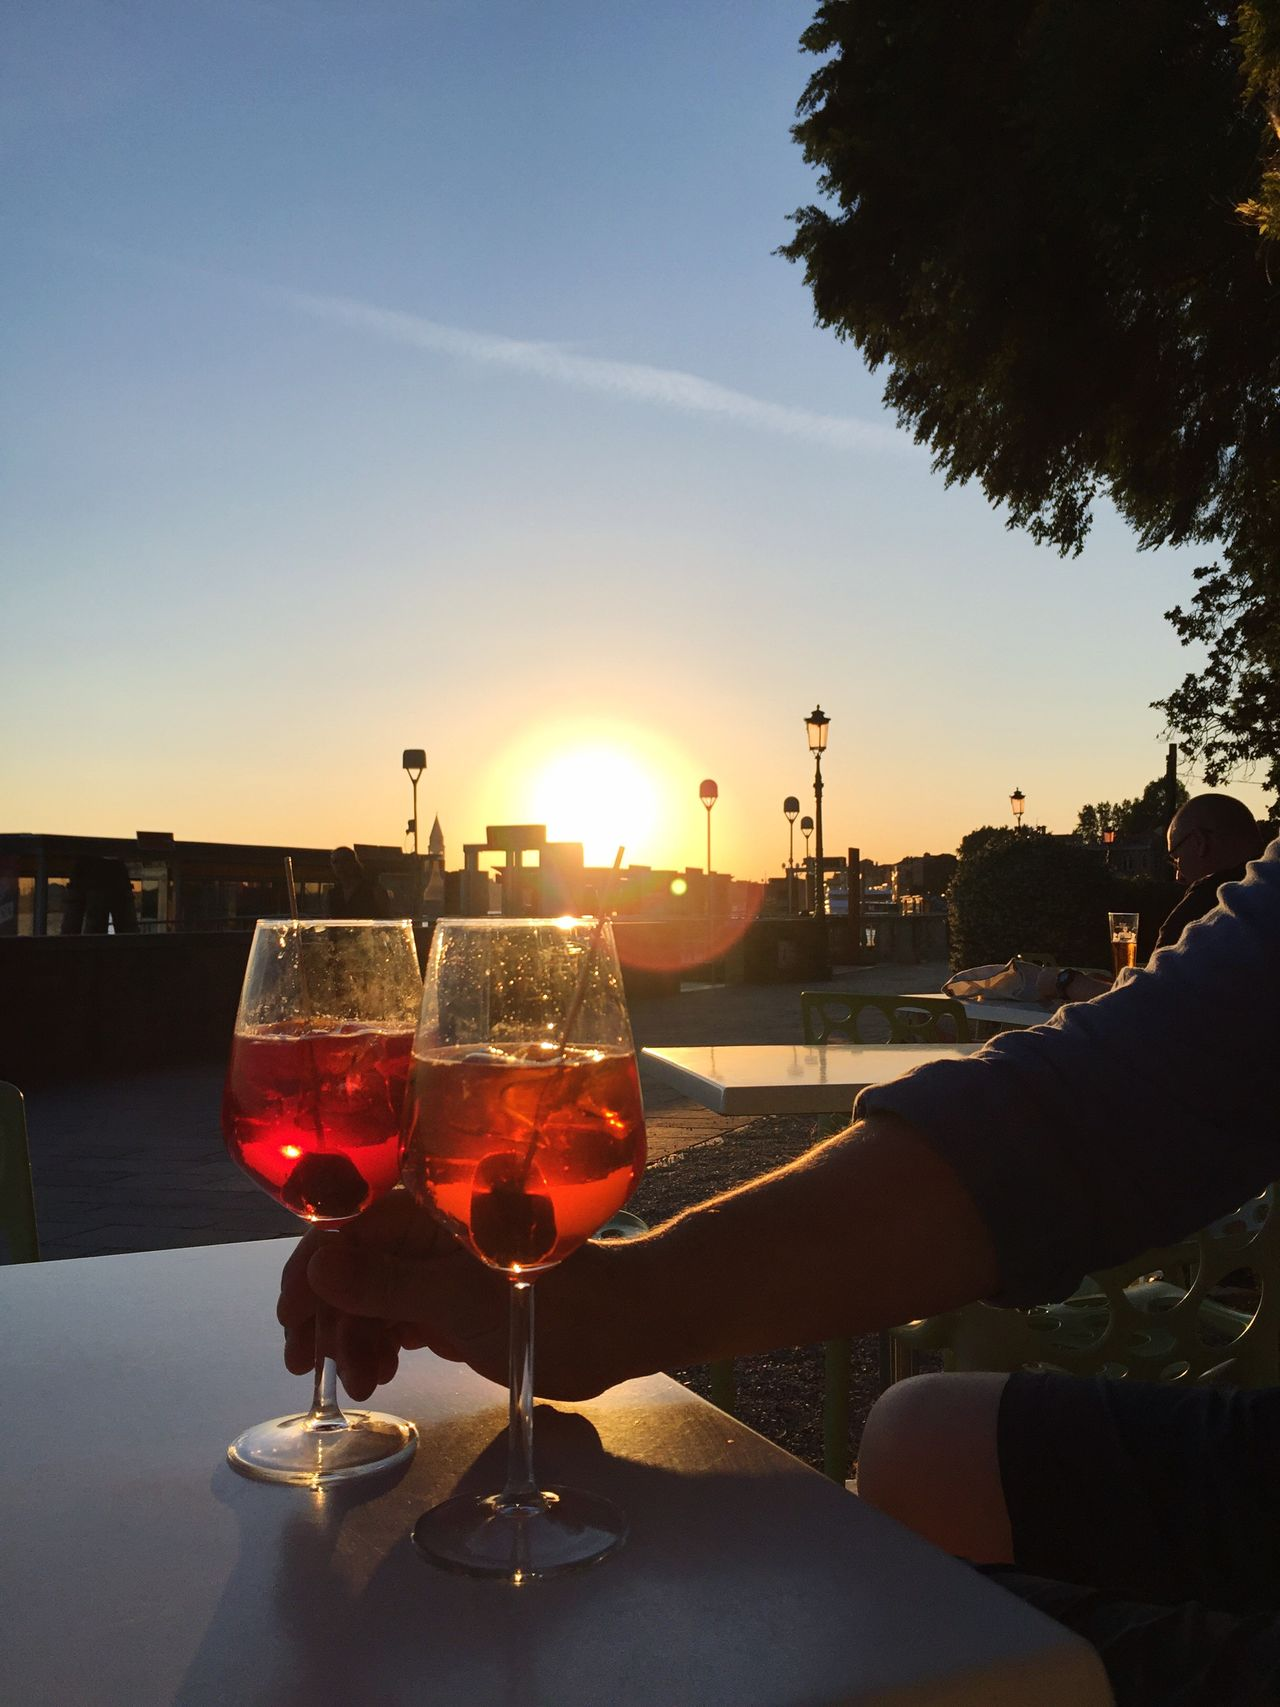 Aperitivo at sunset in Venice Food And Drink Drink Alcohol Refreshment Sunset Wine Wineglass Real People Sun Table Human Hand Drinking Glass Sky Two People Sunlight Close-up Men Freshness Food Outdoors Spritz Time  Aperol Spritz Venice Sunset_collection Togetherness